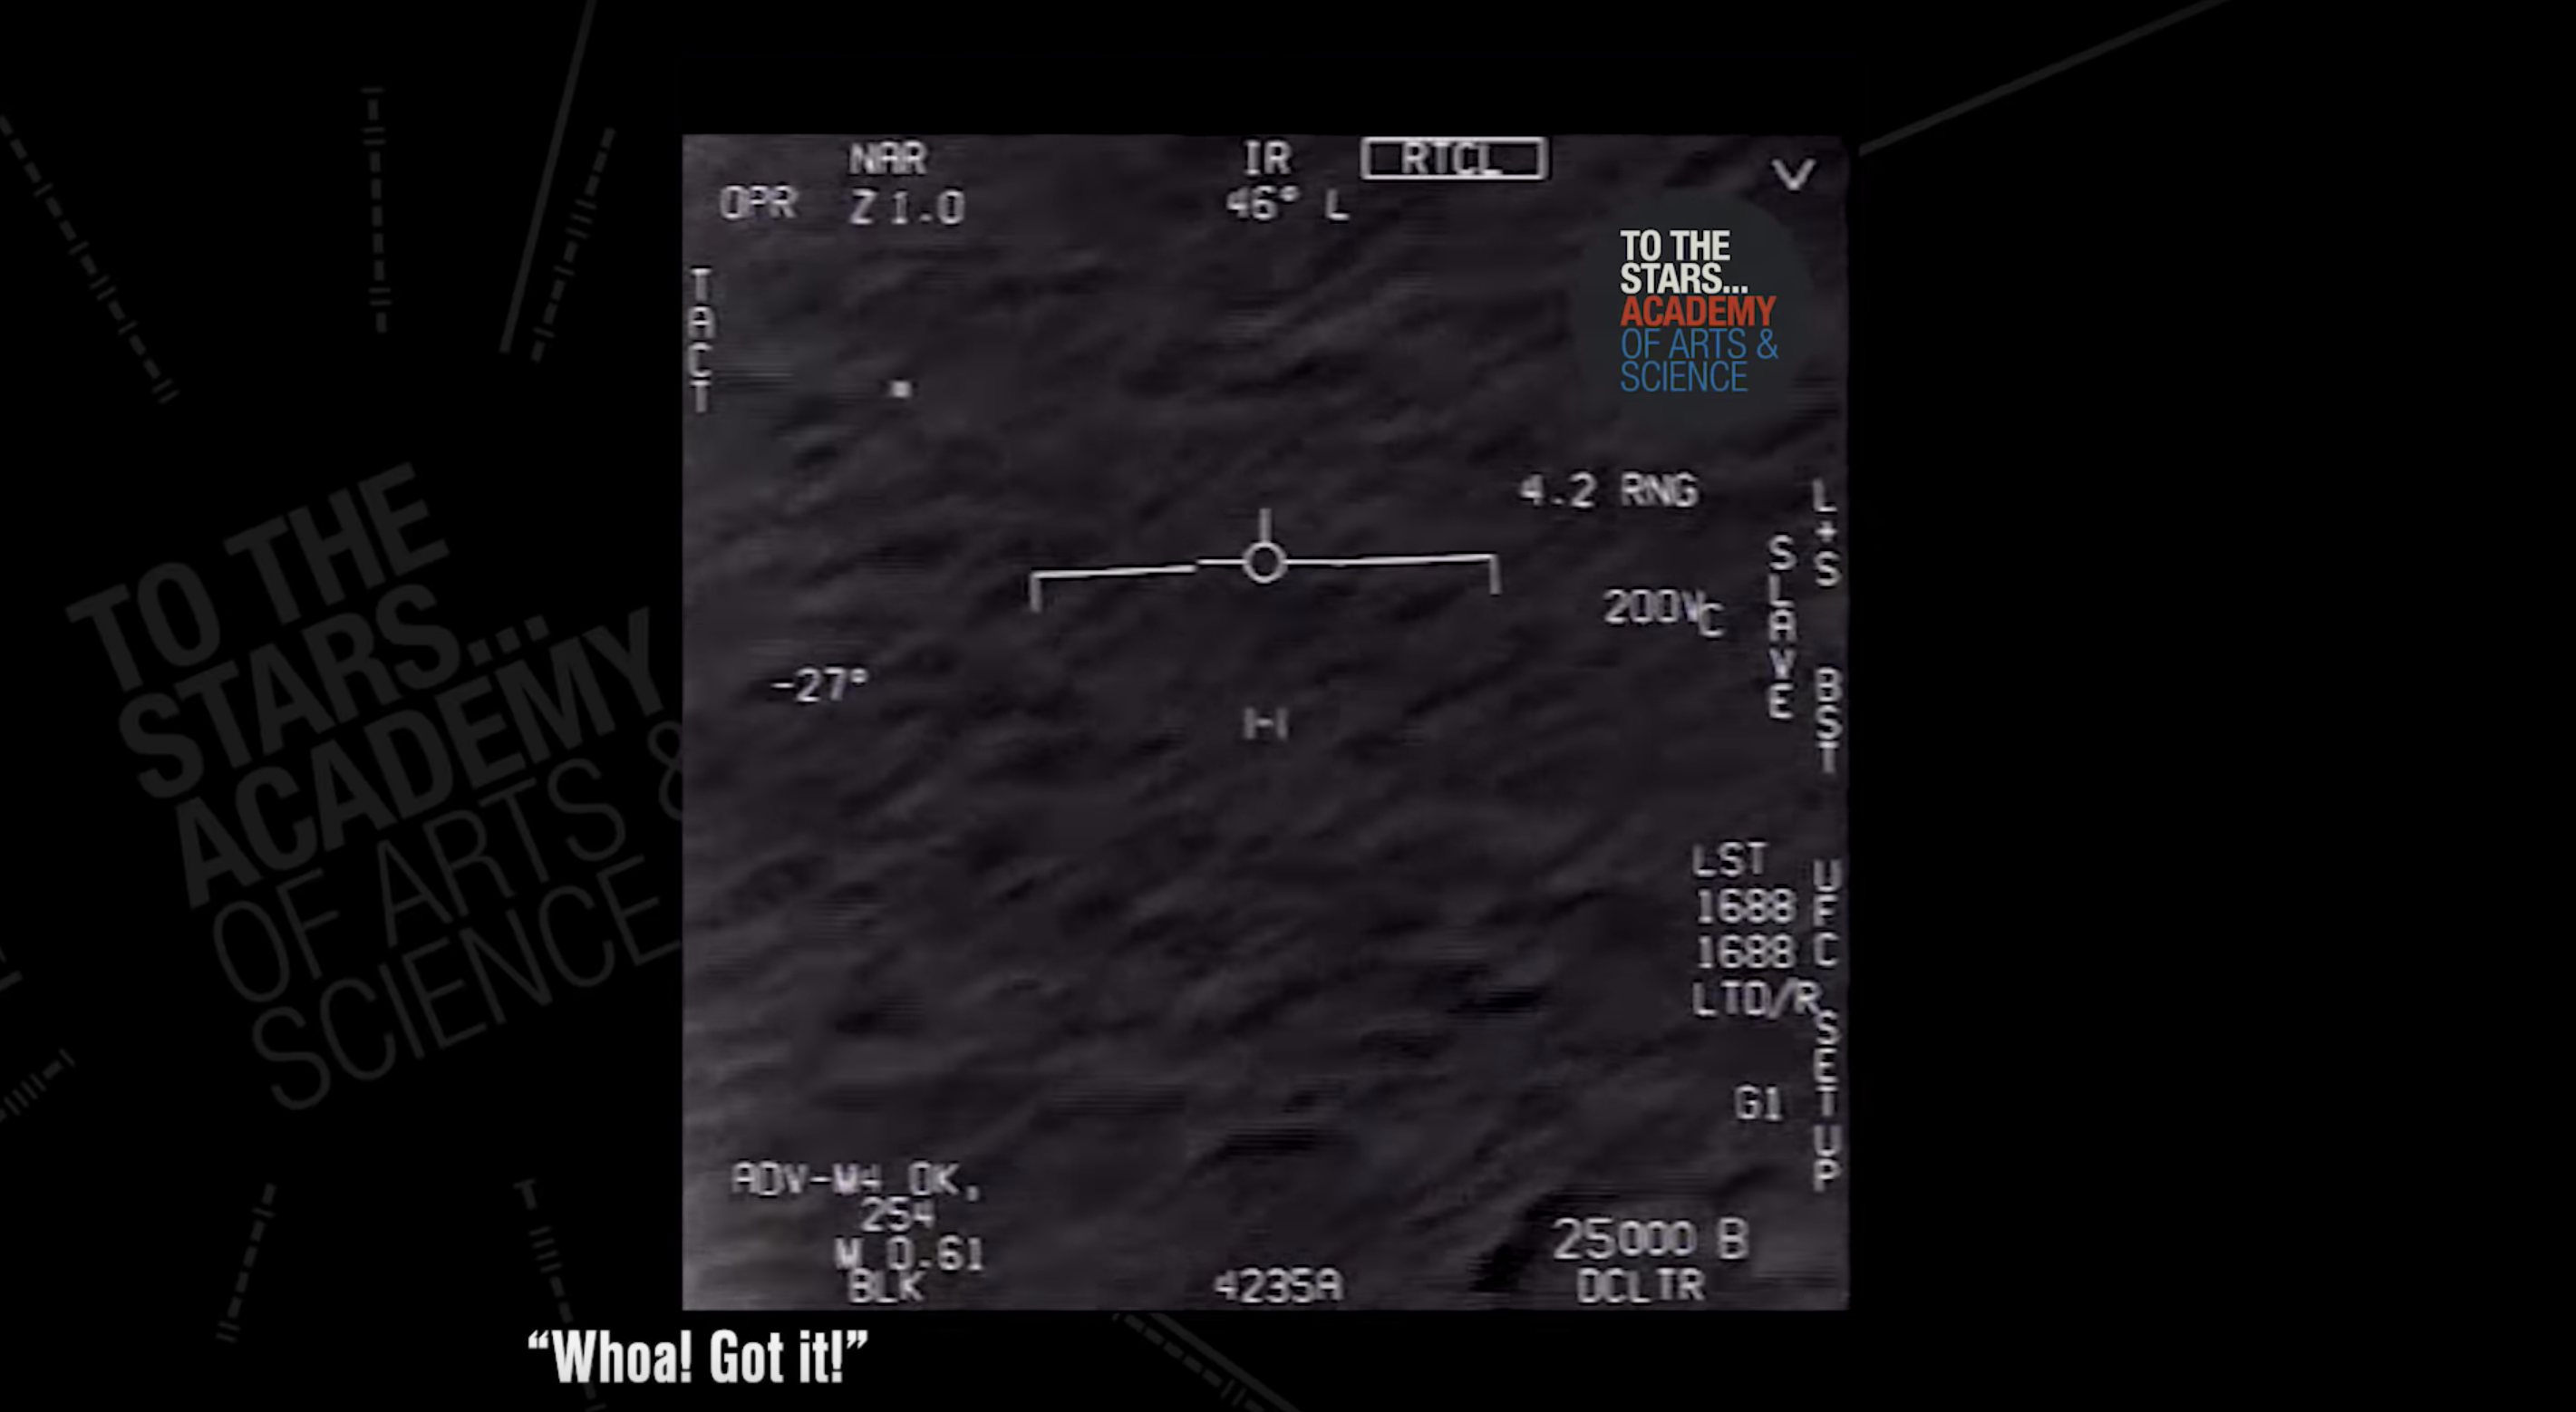 What We Know About the Navy's UFOs